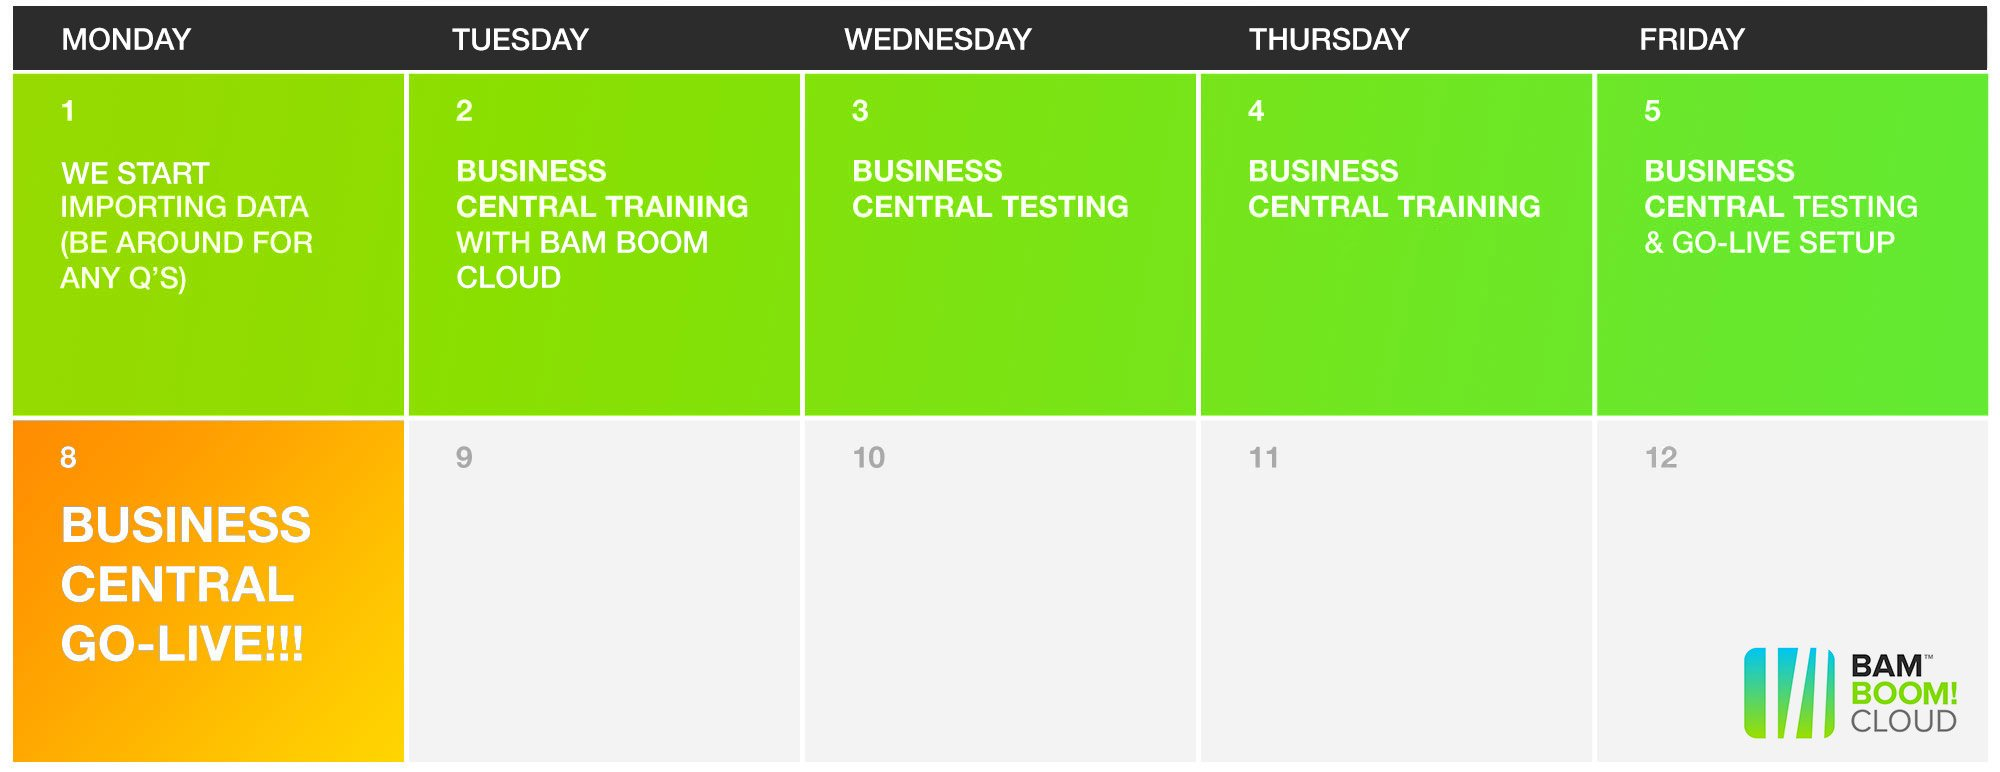 The one week Microsoft Business Central implementation calendar with KickStart from Bam Boom Cloud